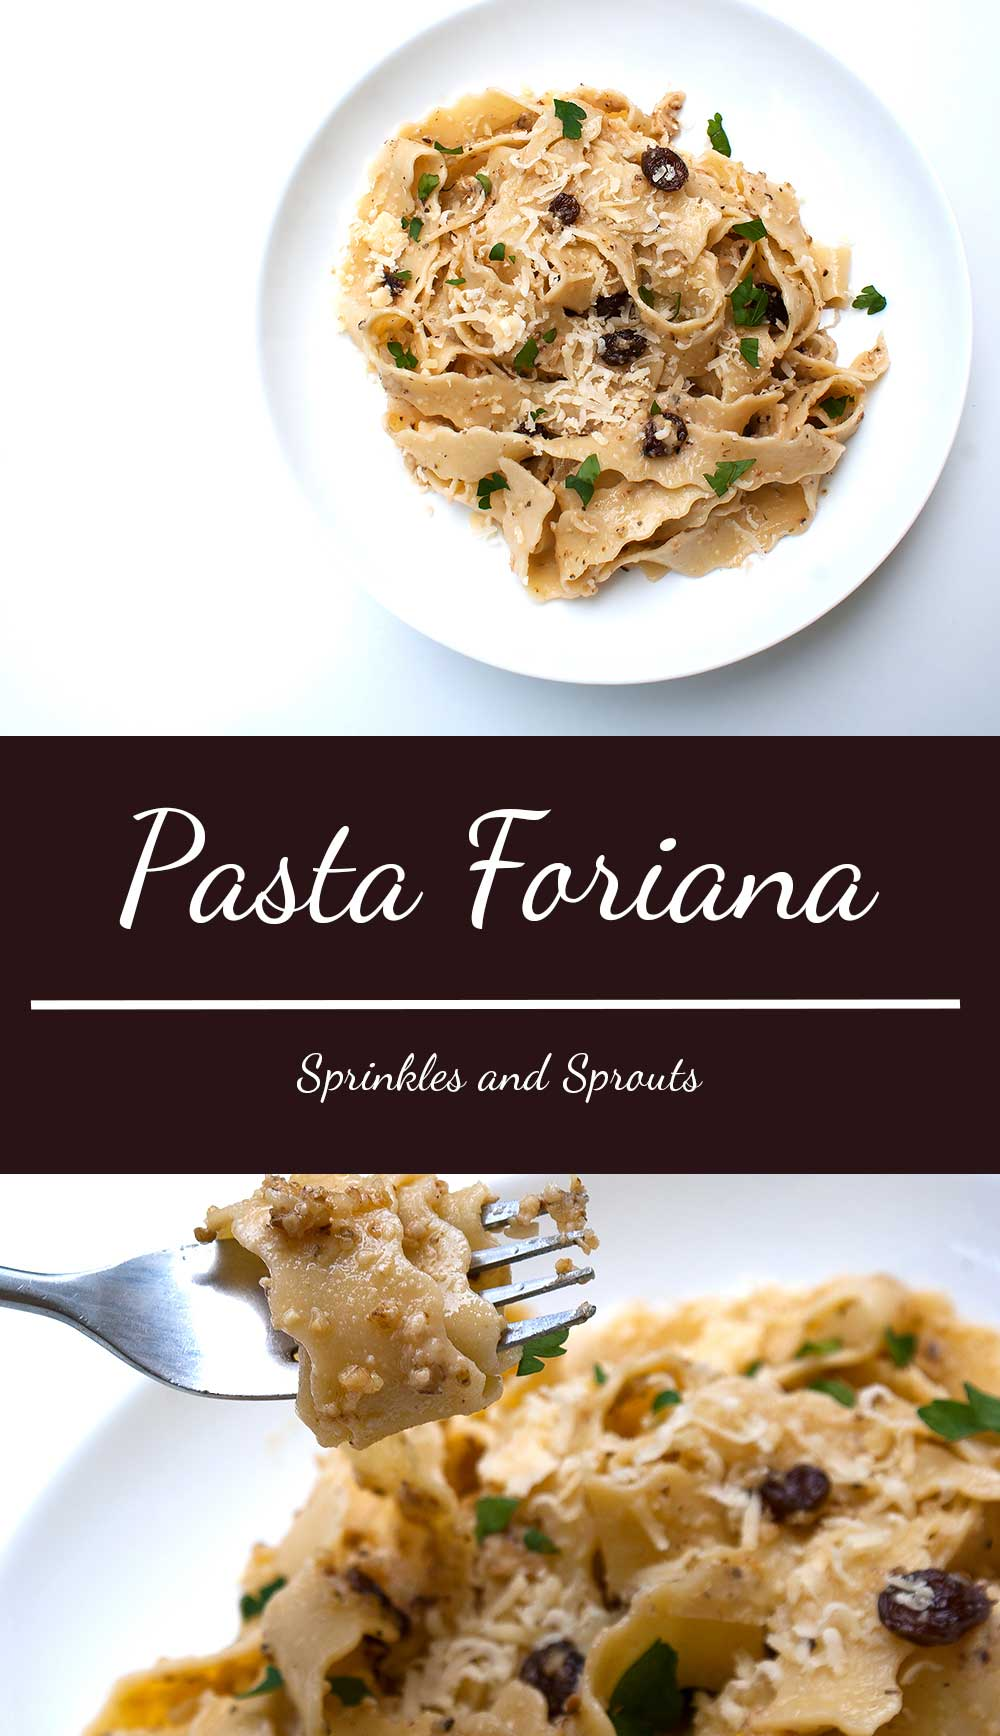 Pasta Foriana. A great vegetarian pasta dish that uses store cupboard ingredients.